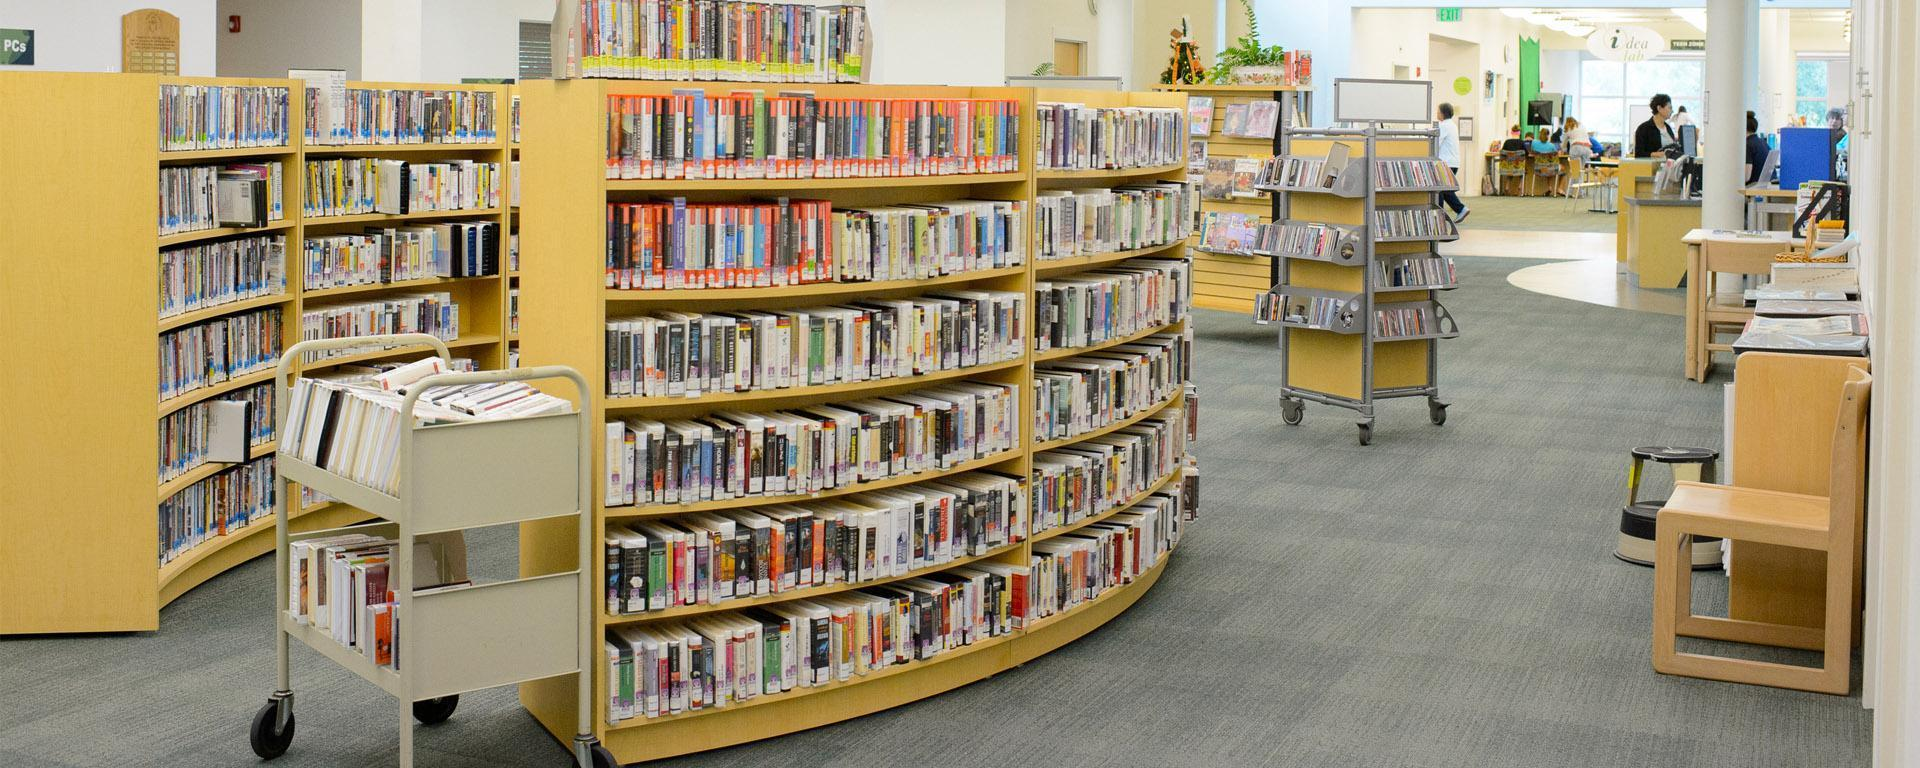 Picture of the audio-visual collection shelved at the Peter and Julie Cummings Library